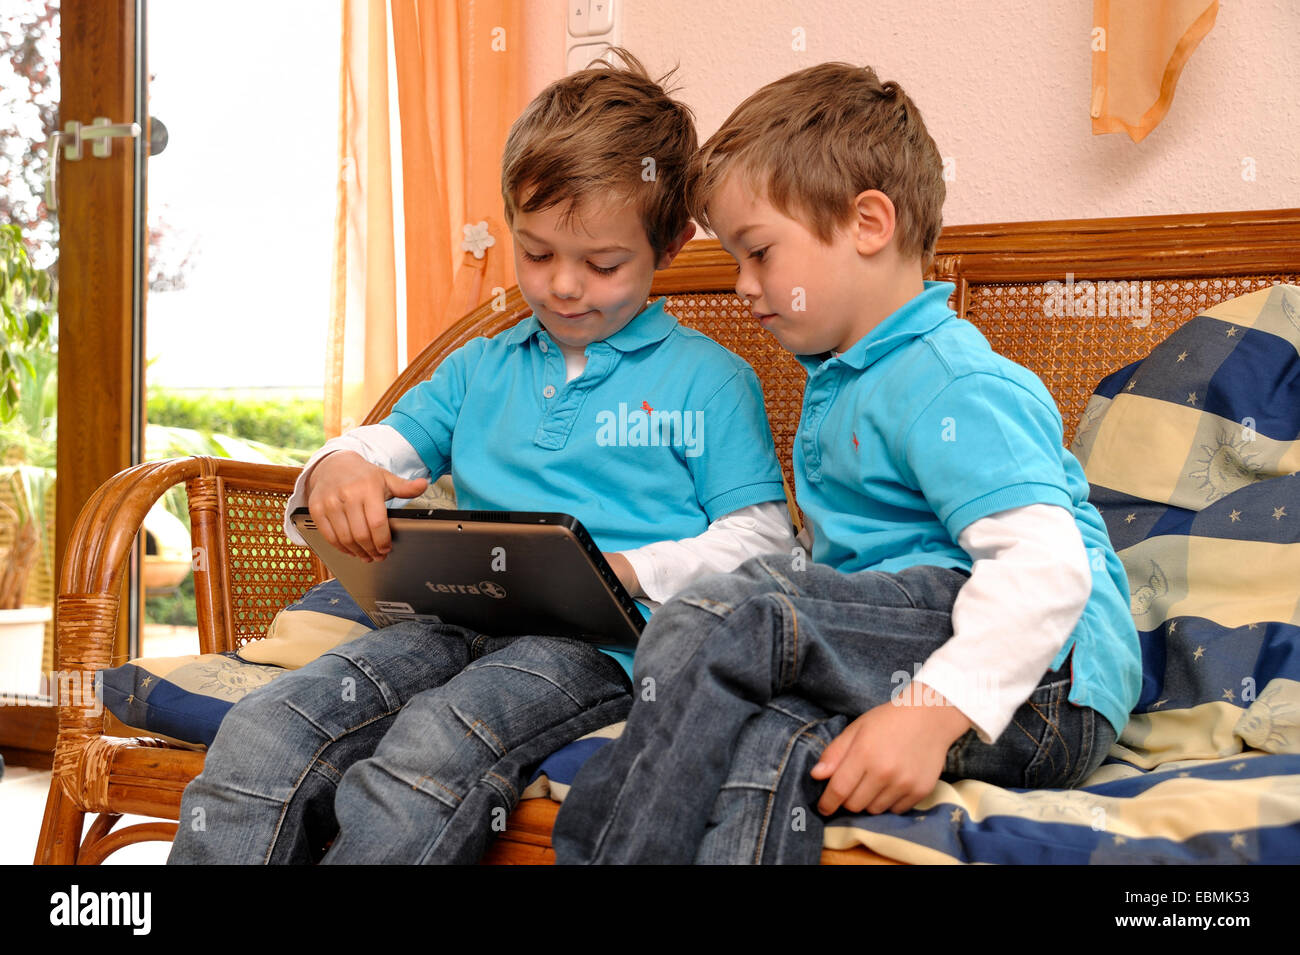 Two boys twins sitting side by side on a bench in a for 2 living rooms side by side